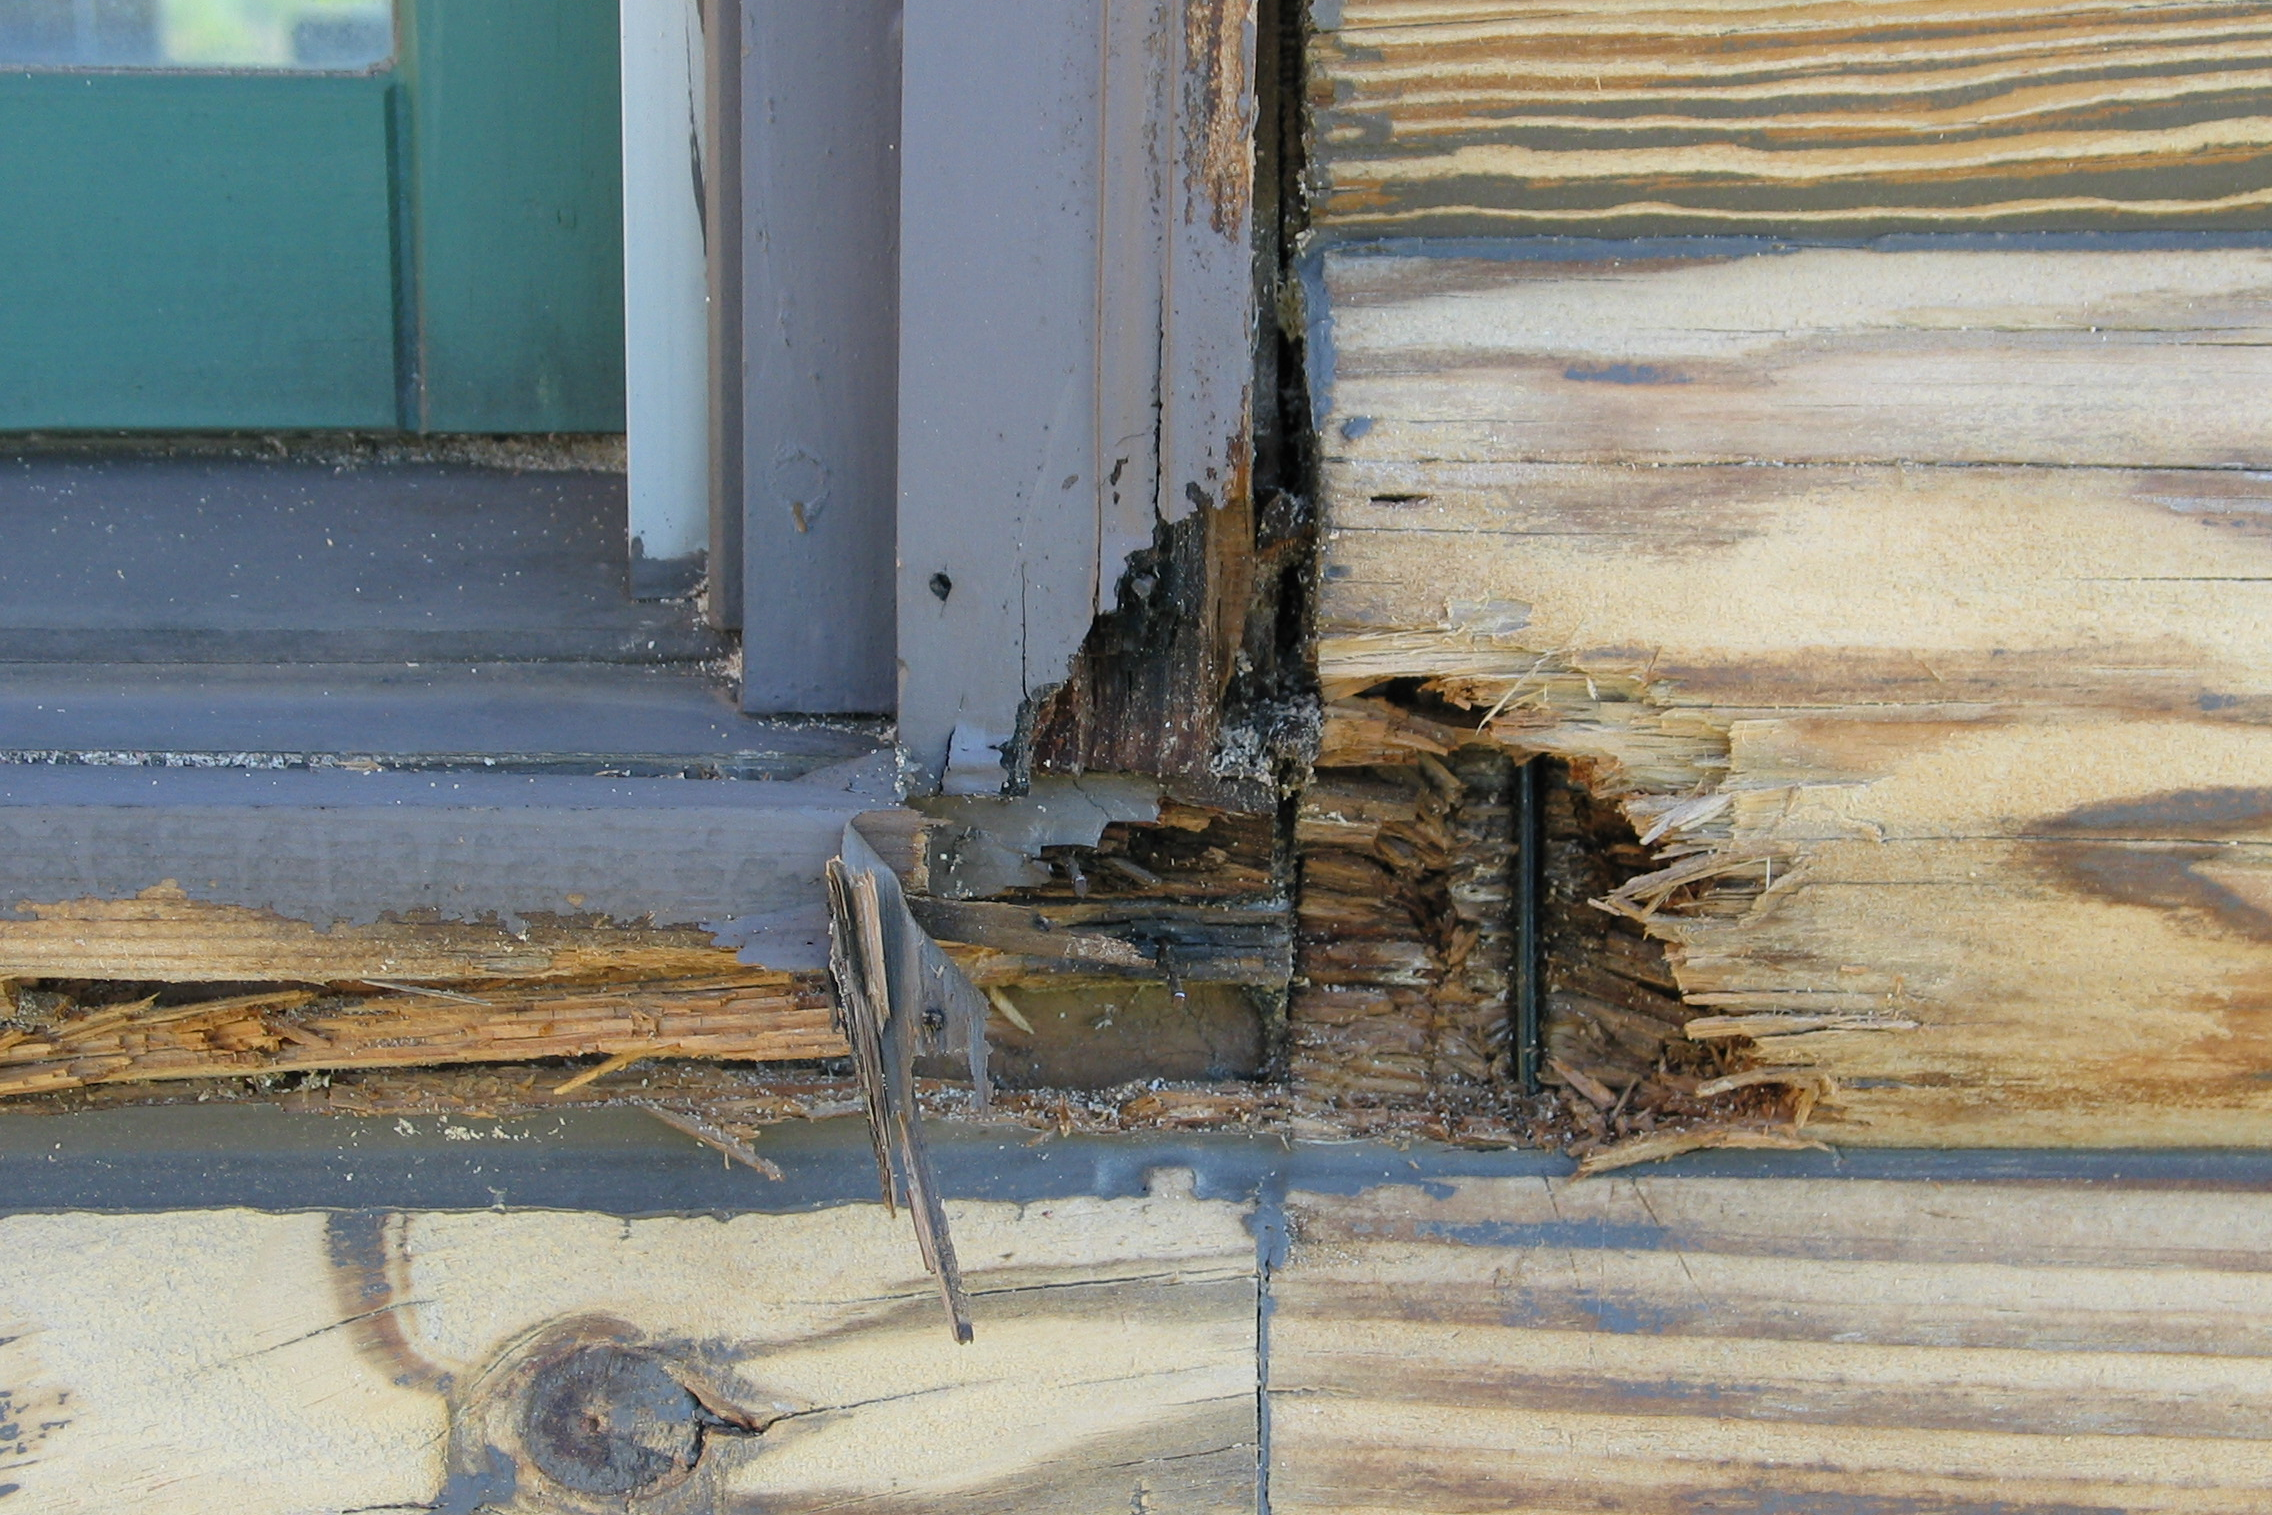 Proper maintenance is required to prevent decay of your home.